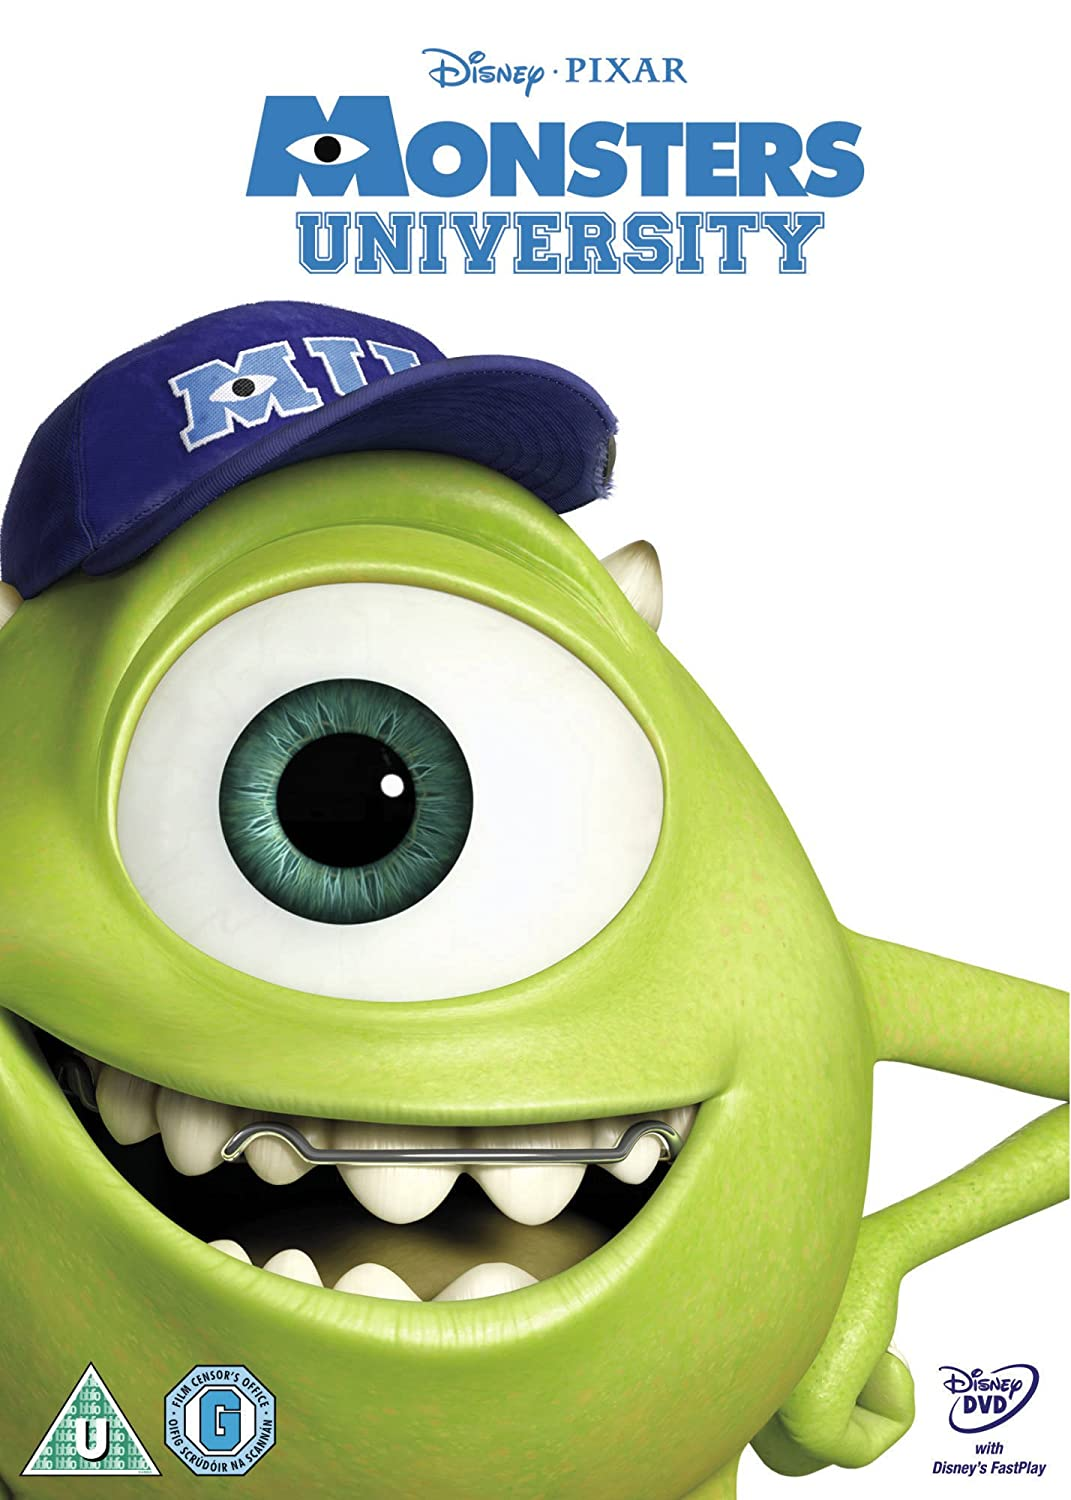 Monsters university dvd limited edition amazon dvd blu ray voltagebd Choice Image